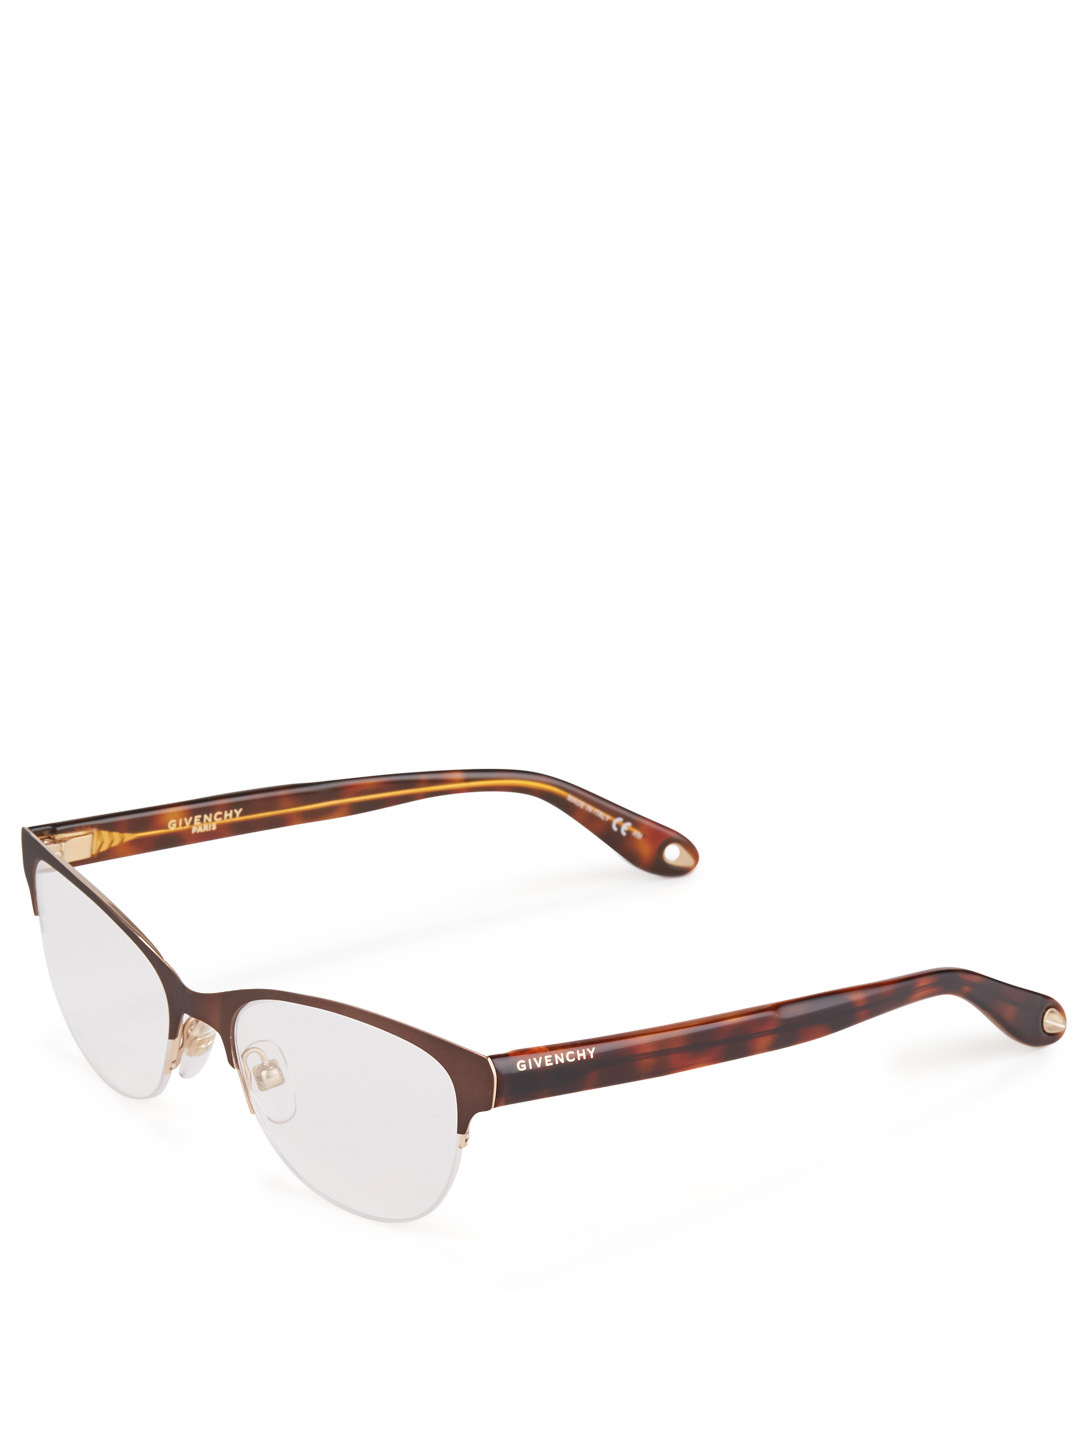 GIVENCHY Cat-Eye Optical Glasses Women's Brown